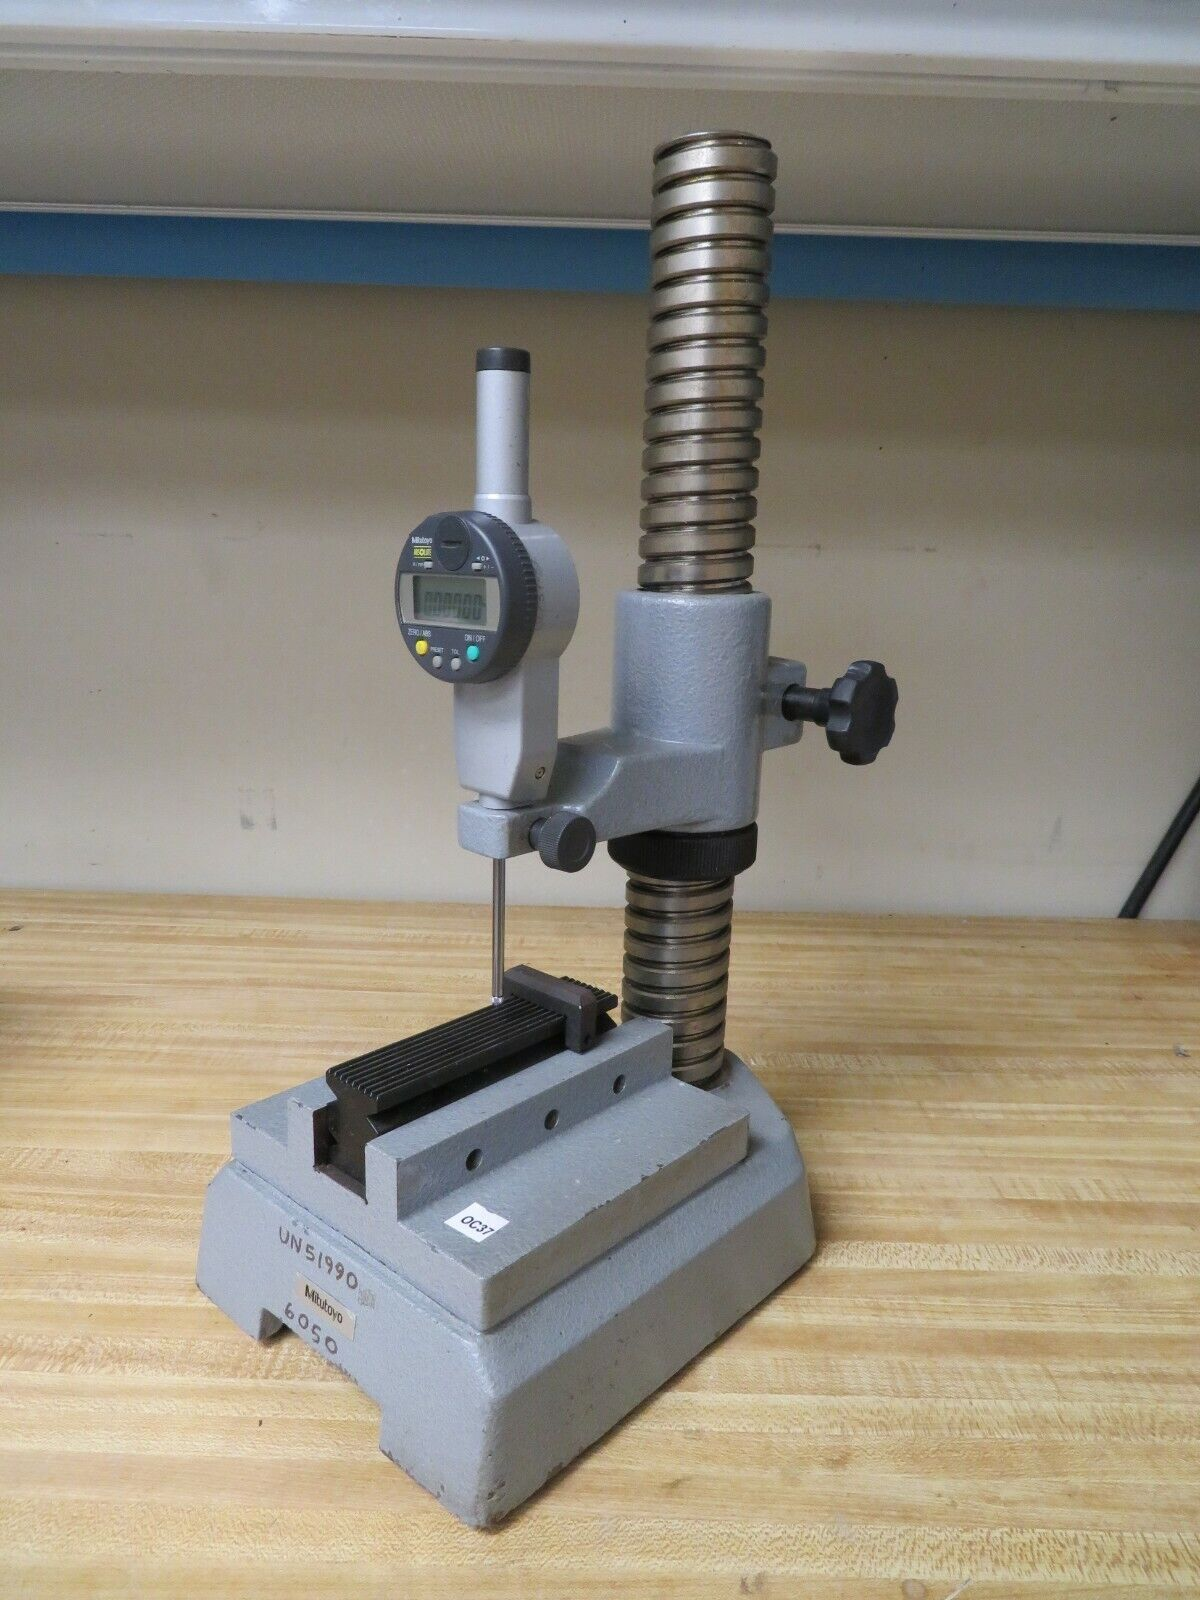 Mitutoyo 215-407 comparator stand base 2941